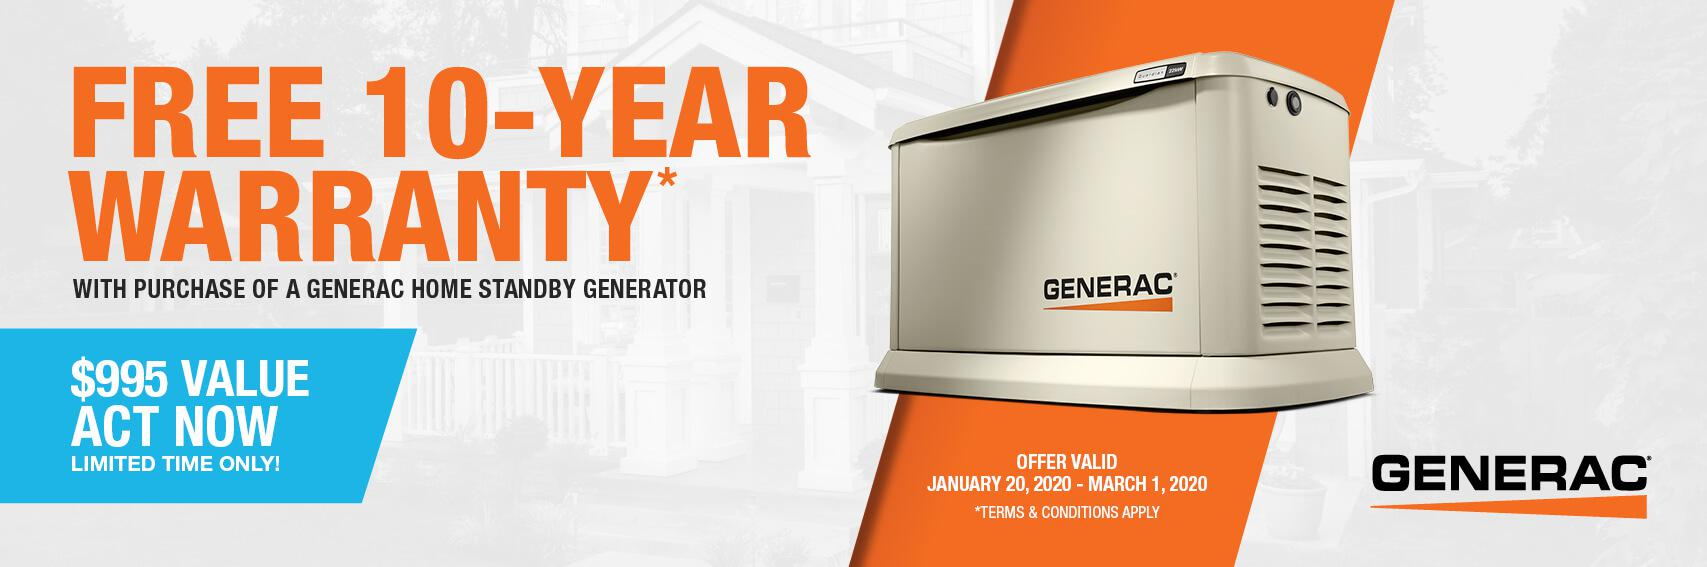 Homestandby Generator Deal | Warranty Offer | Generac Dealer | Gambrills, MD